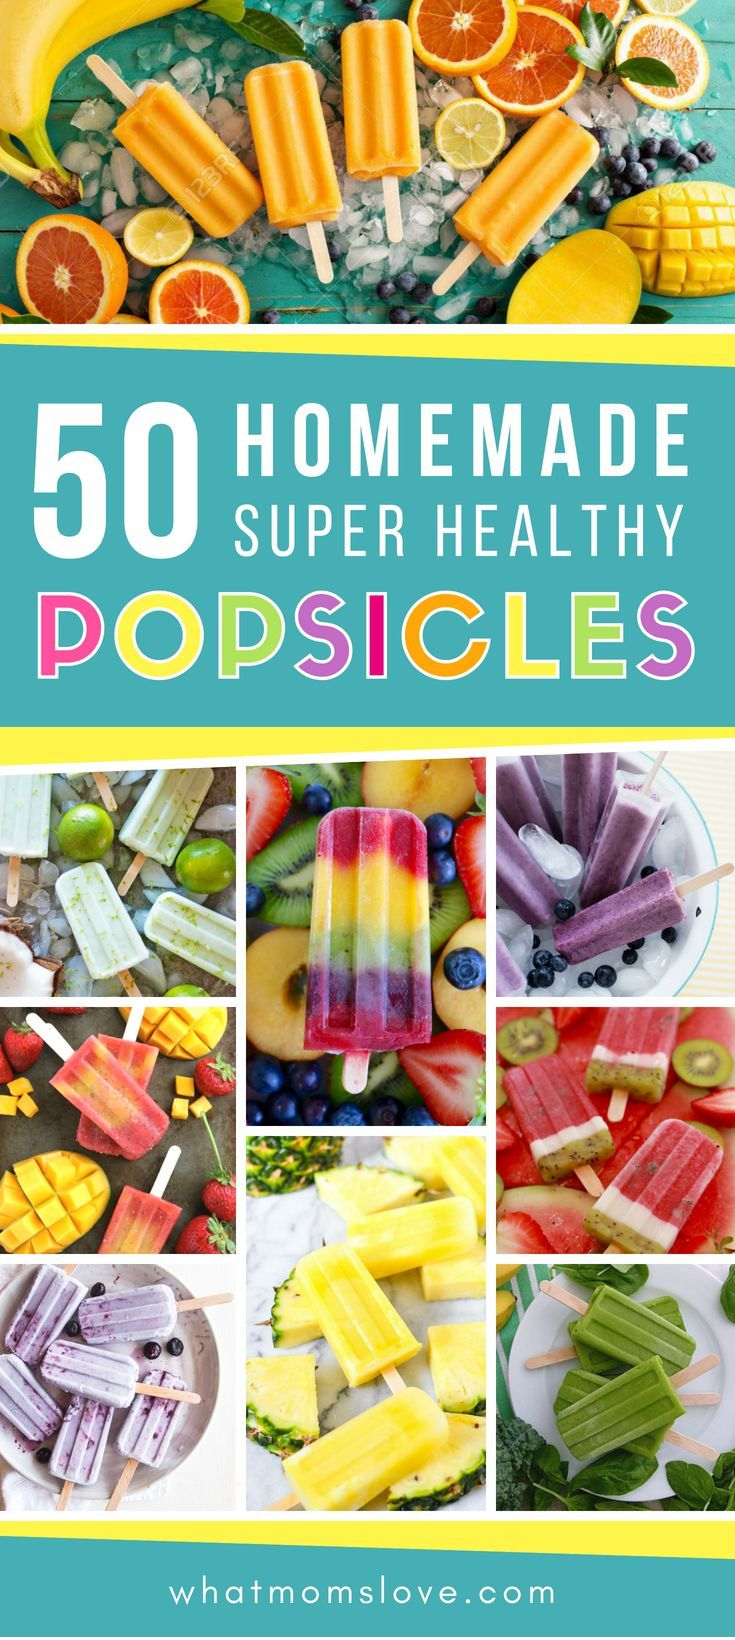 50 Best Healthy Popsicle Recipes For Kids – No Artificial Colors or Refined Sugars In Sight! images